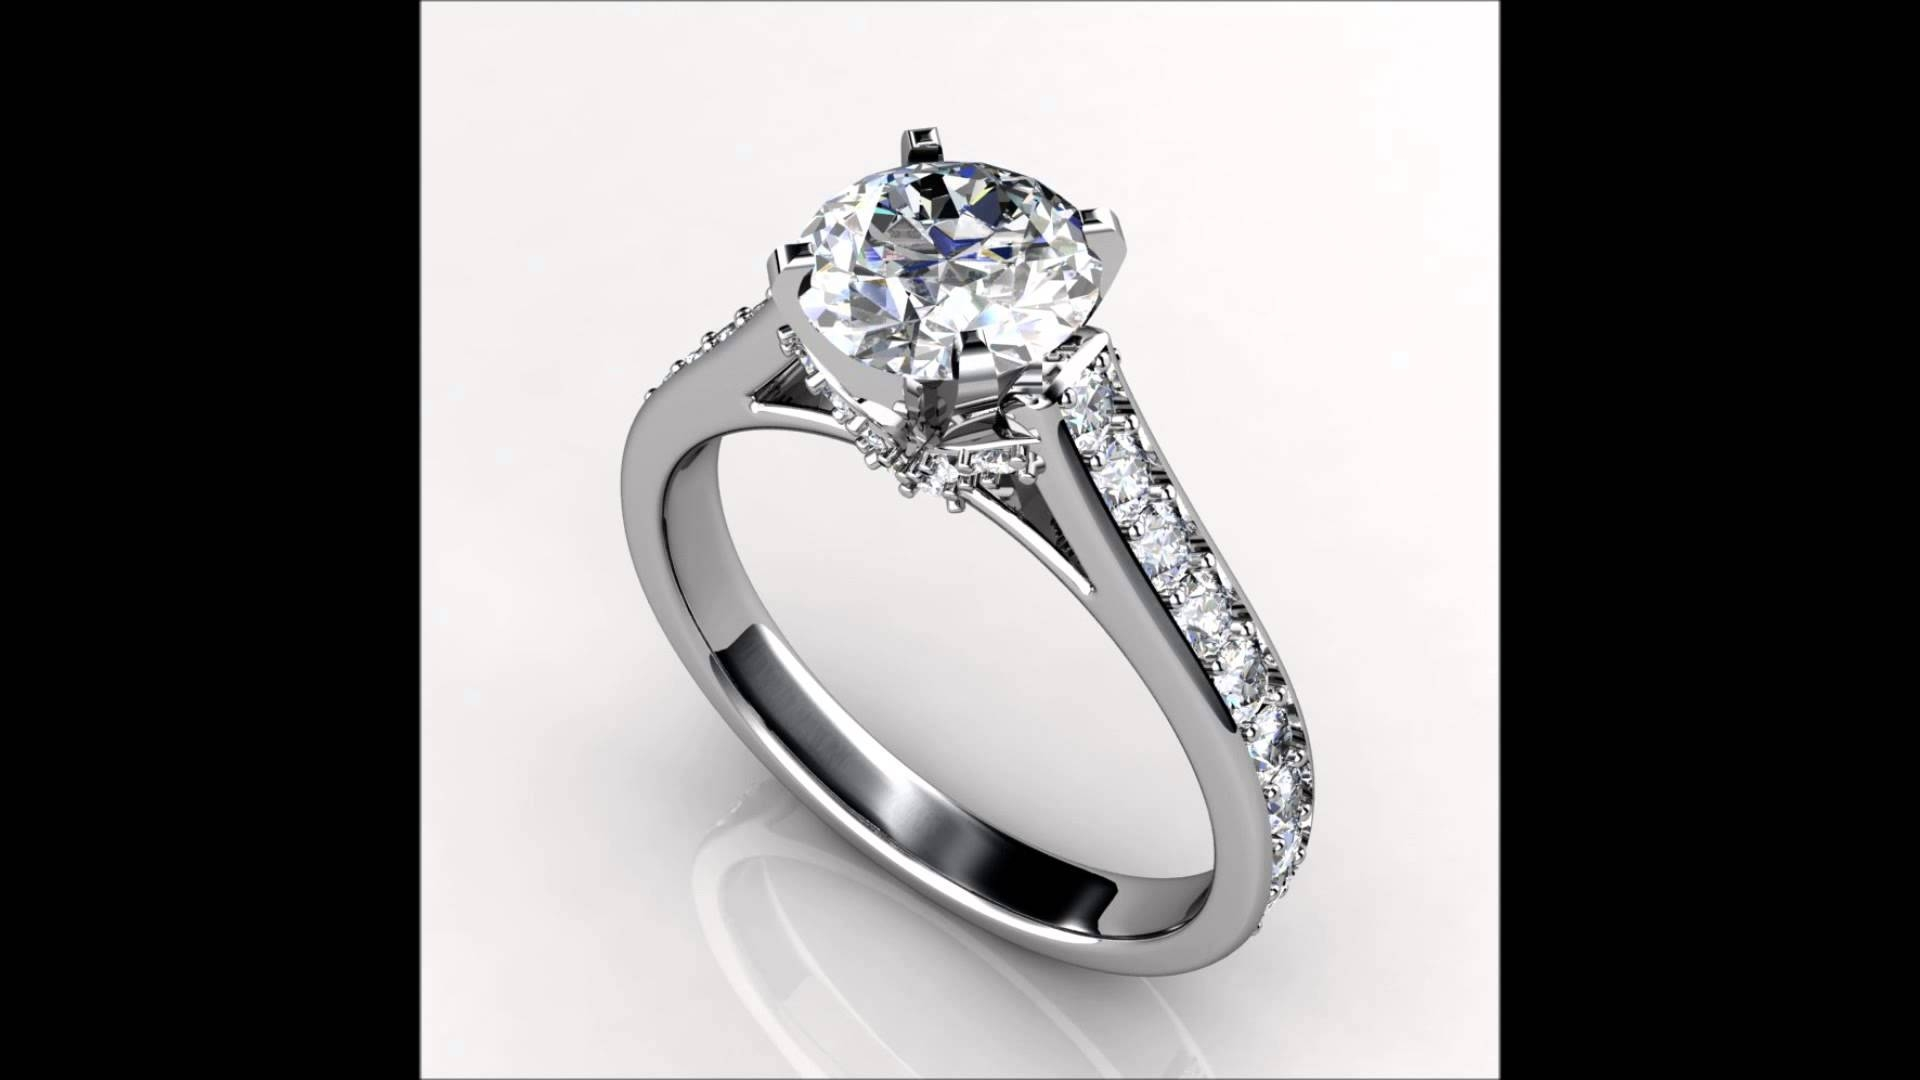 Bridal Sets Engagement Rings Promise Rings Solitaire Engagement Throughout Chicago Wedding Bands (View 1 of 15)